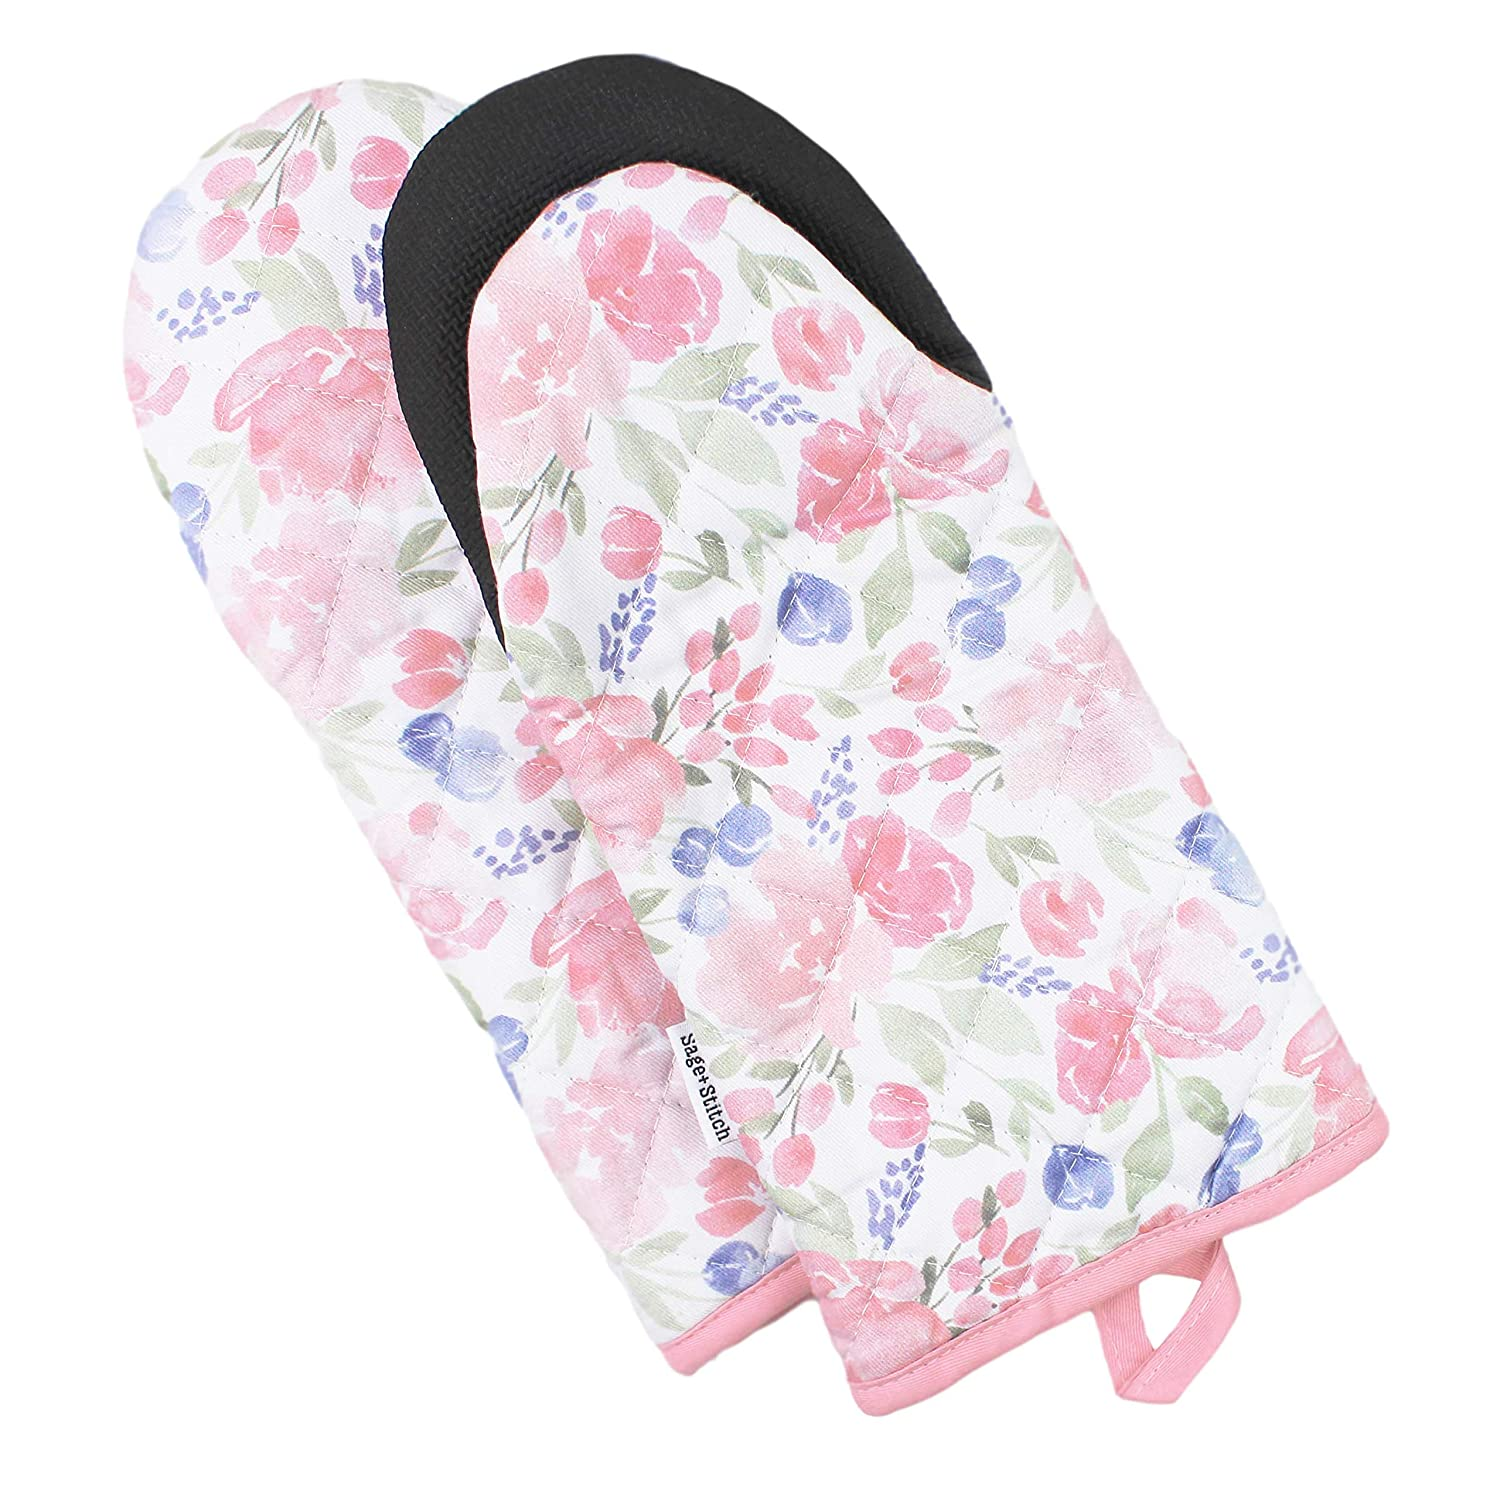 Sage and Stitch Kitchen Oven Mitts for Women 5.5'' x 12'' Non Slip Heat Resistant Neoprene Grip and Hanging Loop and Long Sleeves for Baking, Cooking, BBQ, 100% Cotton Set of 2 - Pink Floral